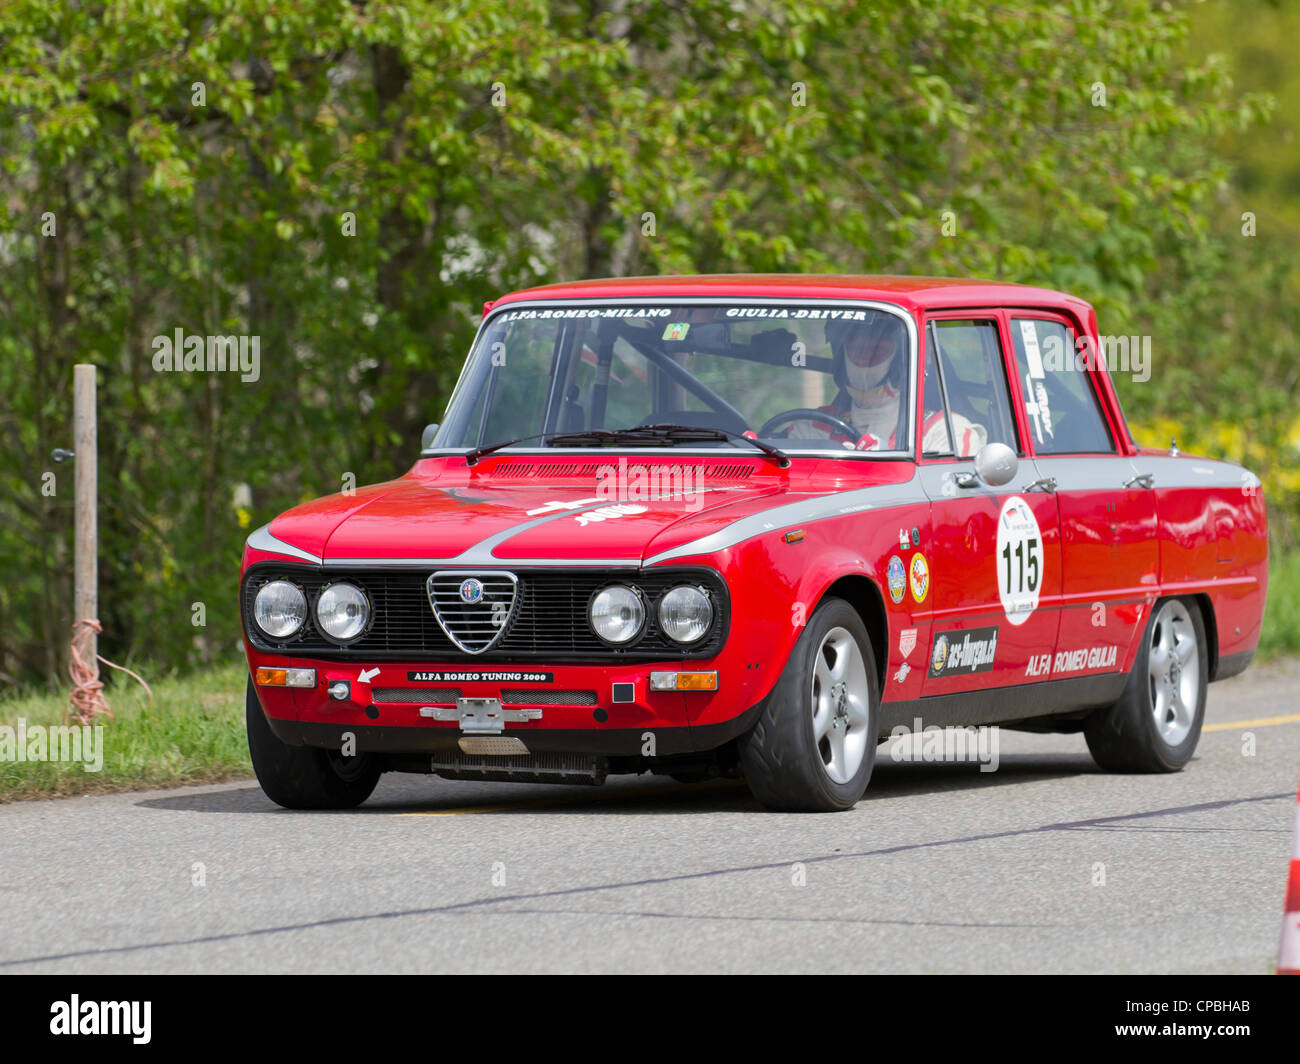 vintage race touring car alfa romeo giulia from 1976 at grand prix in stock photo 48198259 alamy. Black Bedroom Furniture Sets. Home Design Ideas